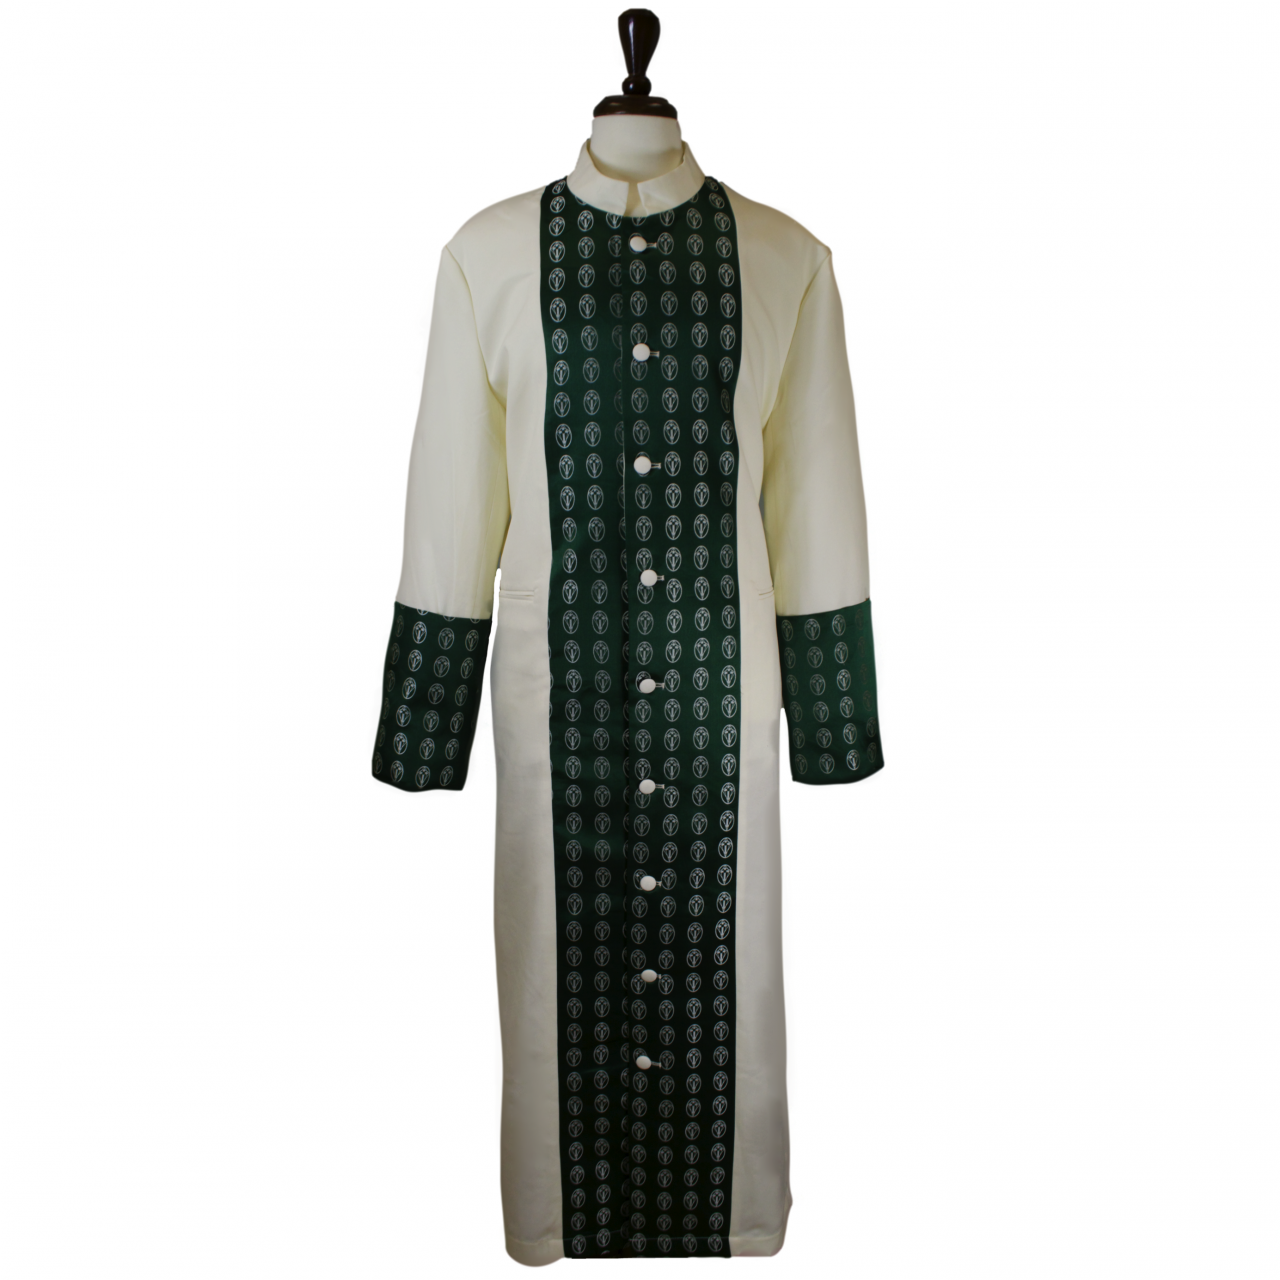 805 M. Men's Premium Pastor/Clergy Robe - Creme/Emerald Green Brocade